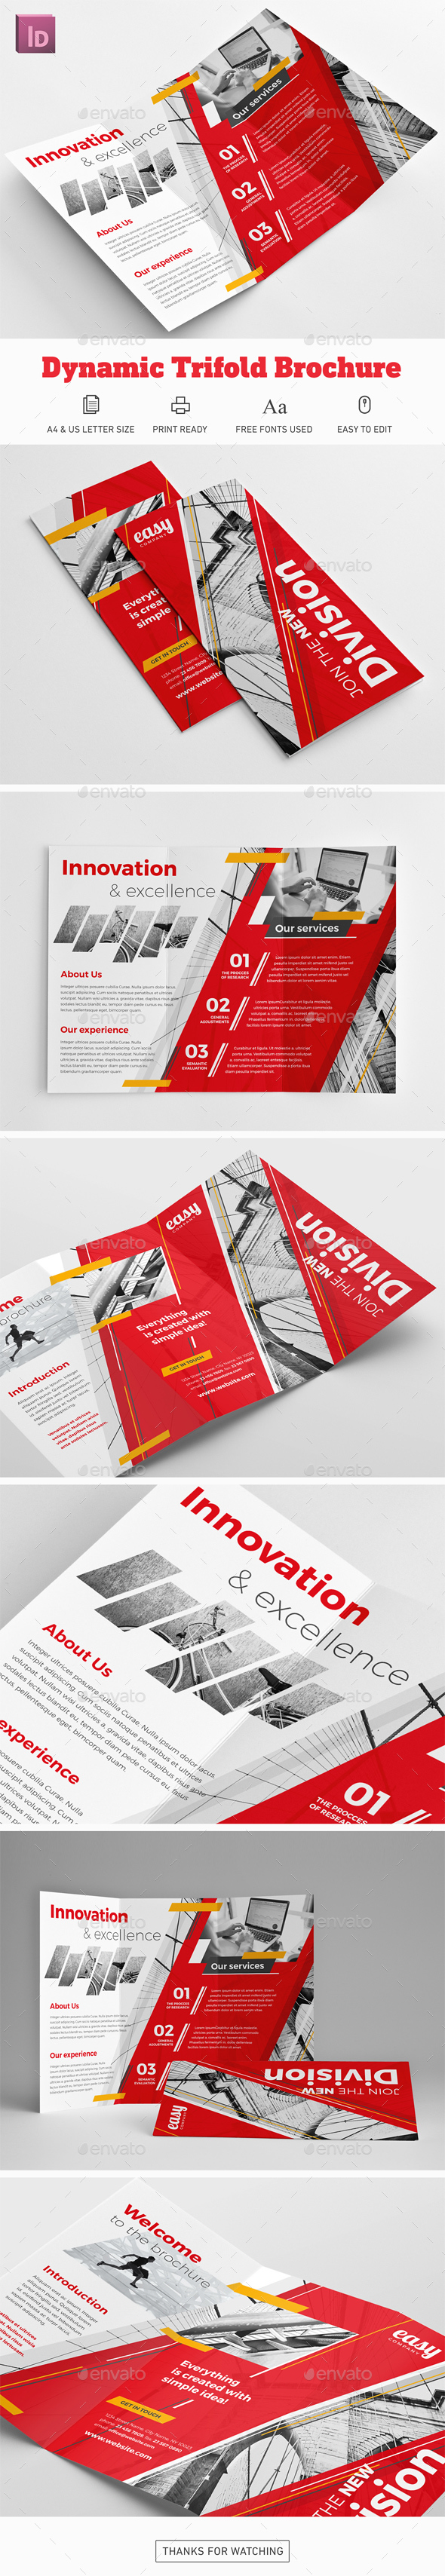 Dynamic Trifold Brochure - Corporate Brochures